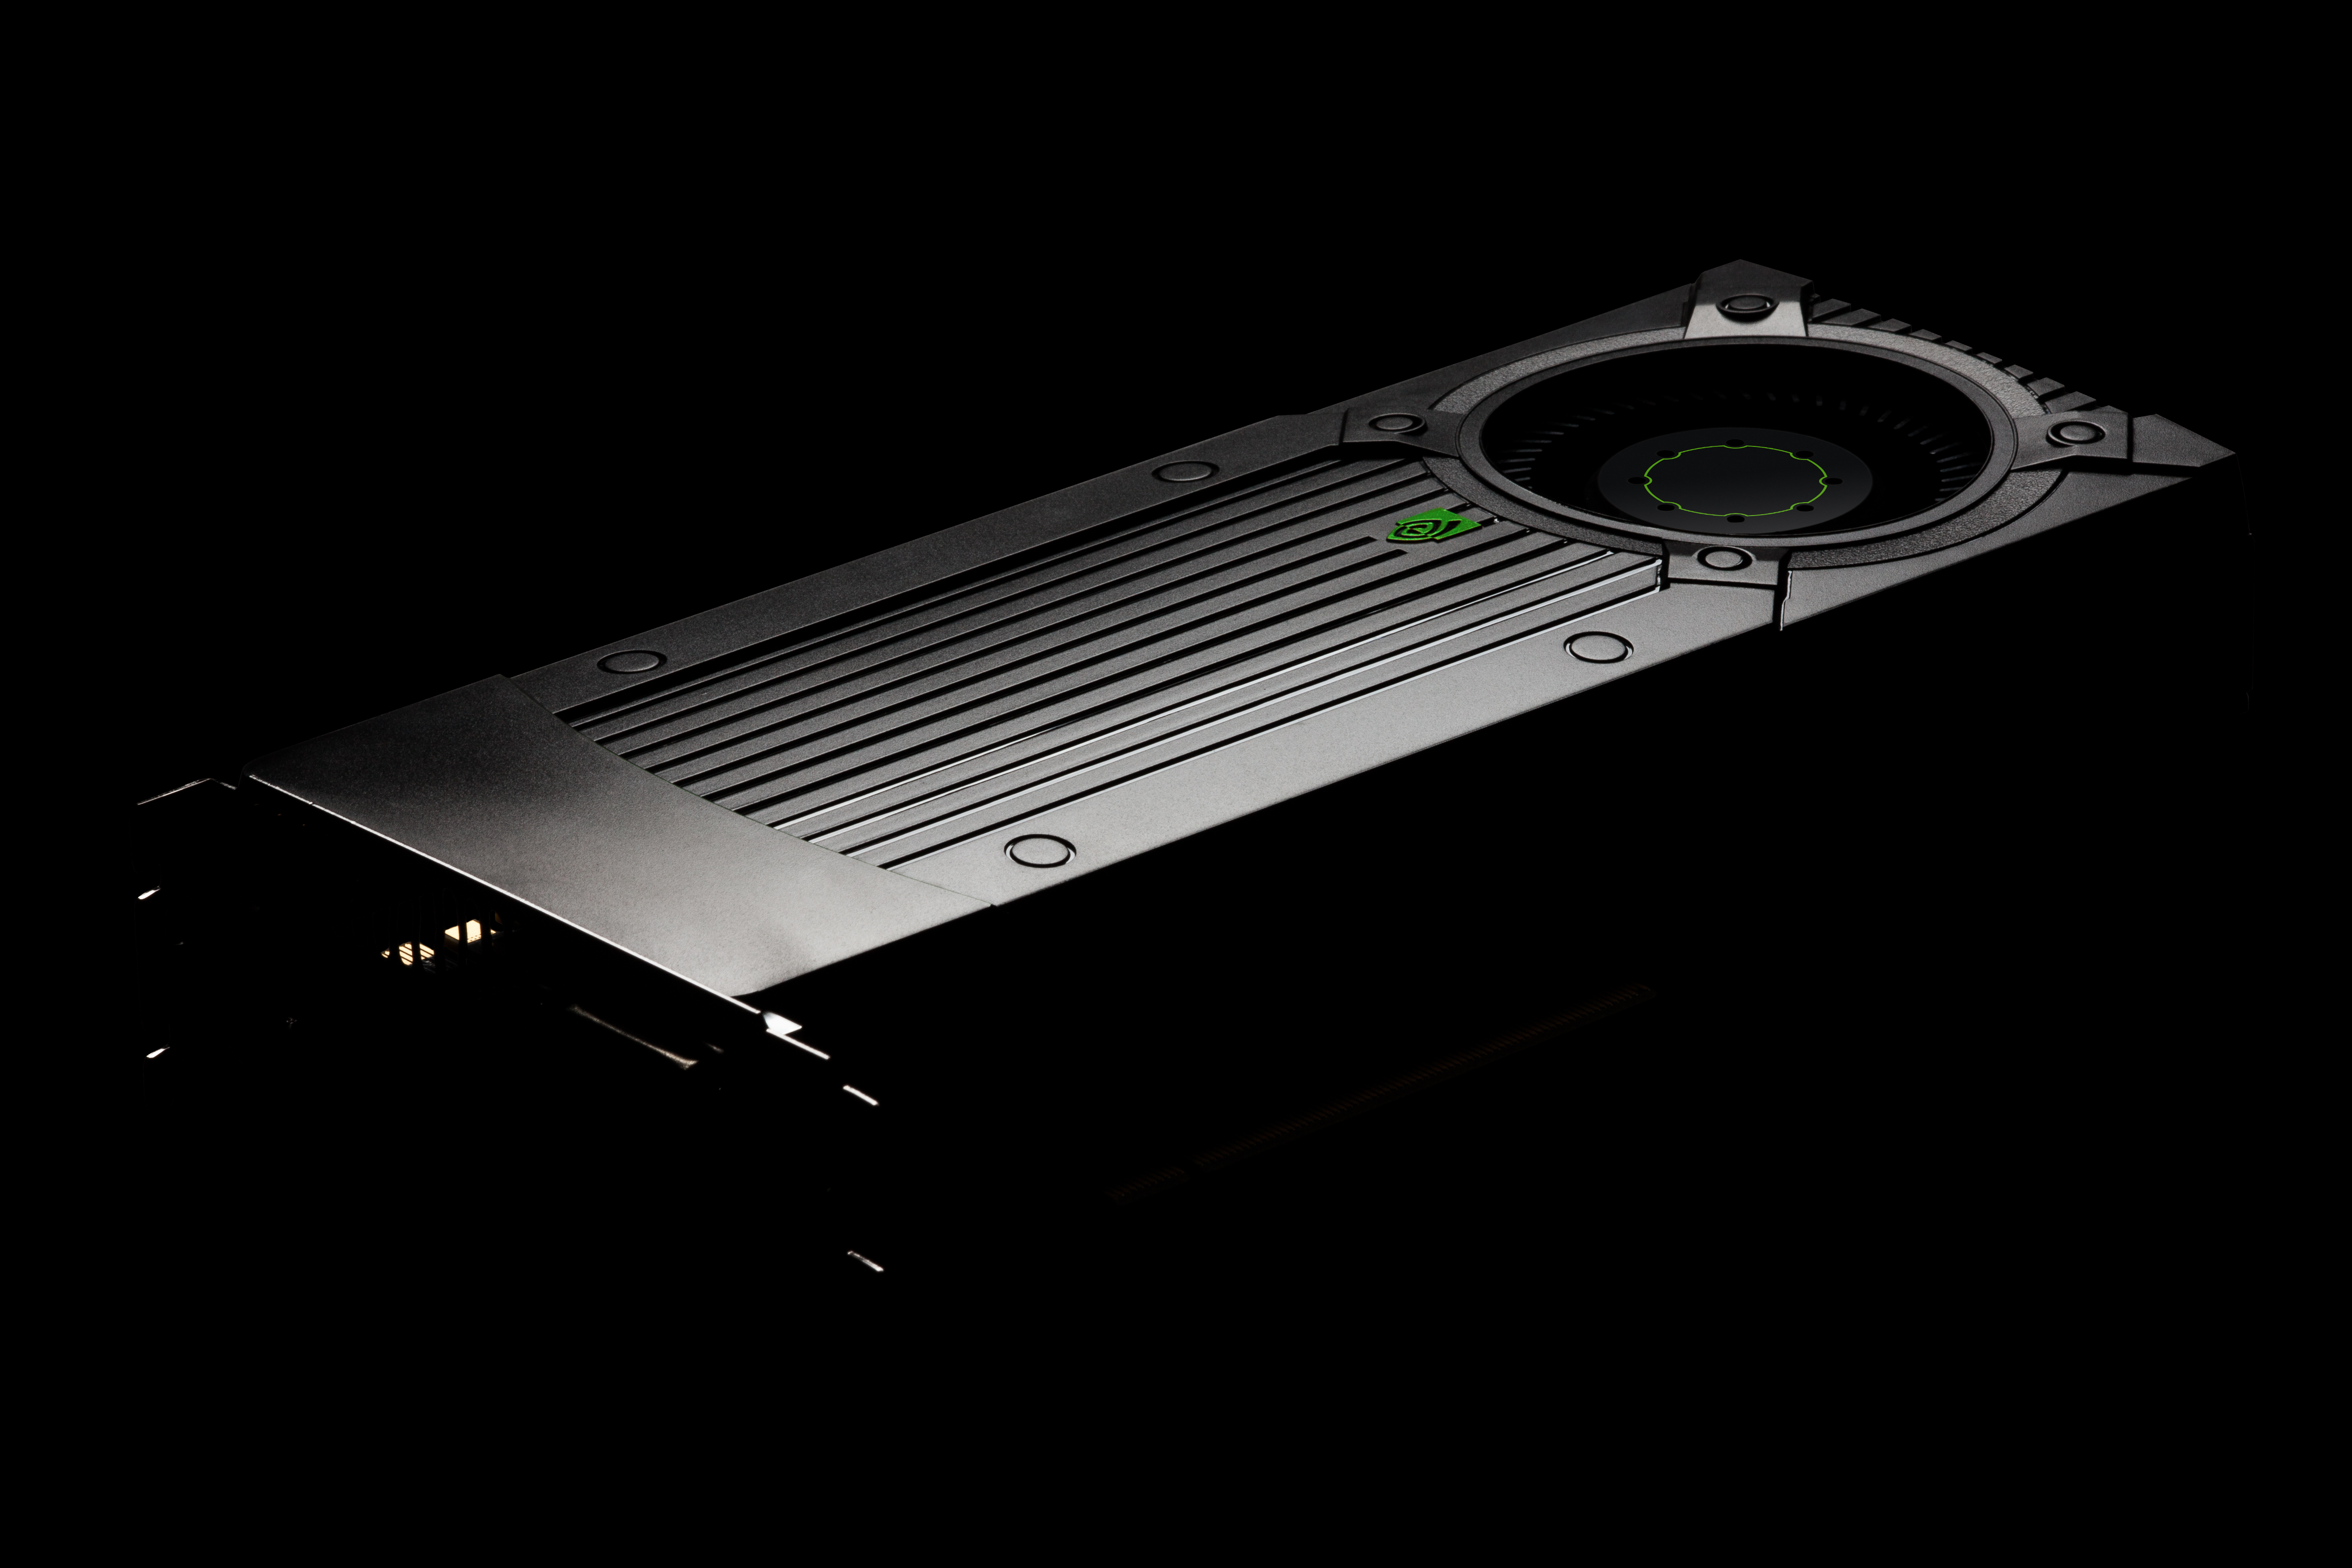 Final Thoughts Nvidia Geforce Gtx 760 Review The New Enthusiast Ti Kepler